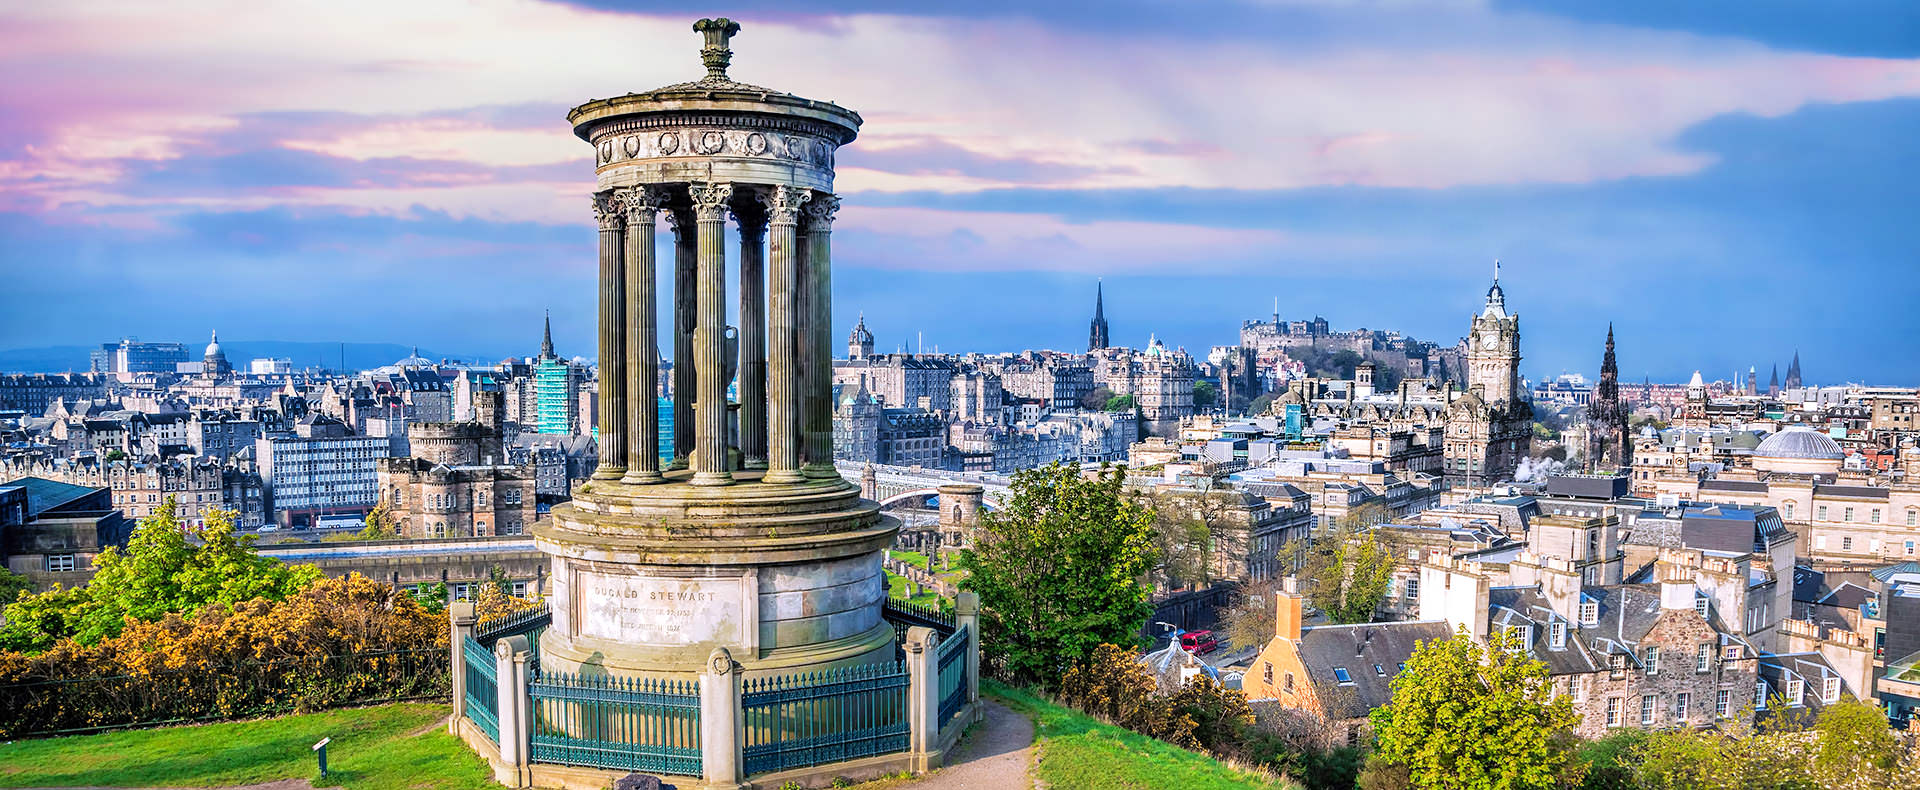 Edinburgh, United Kingdom